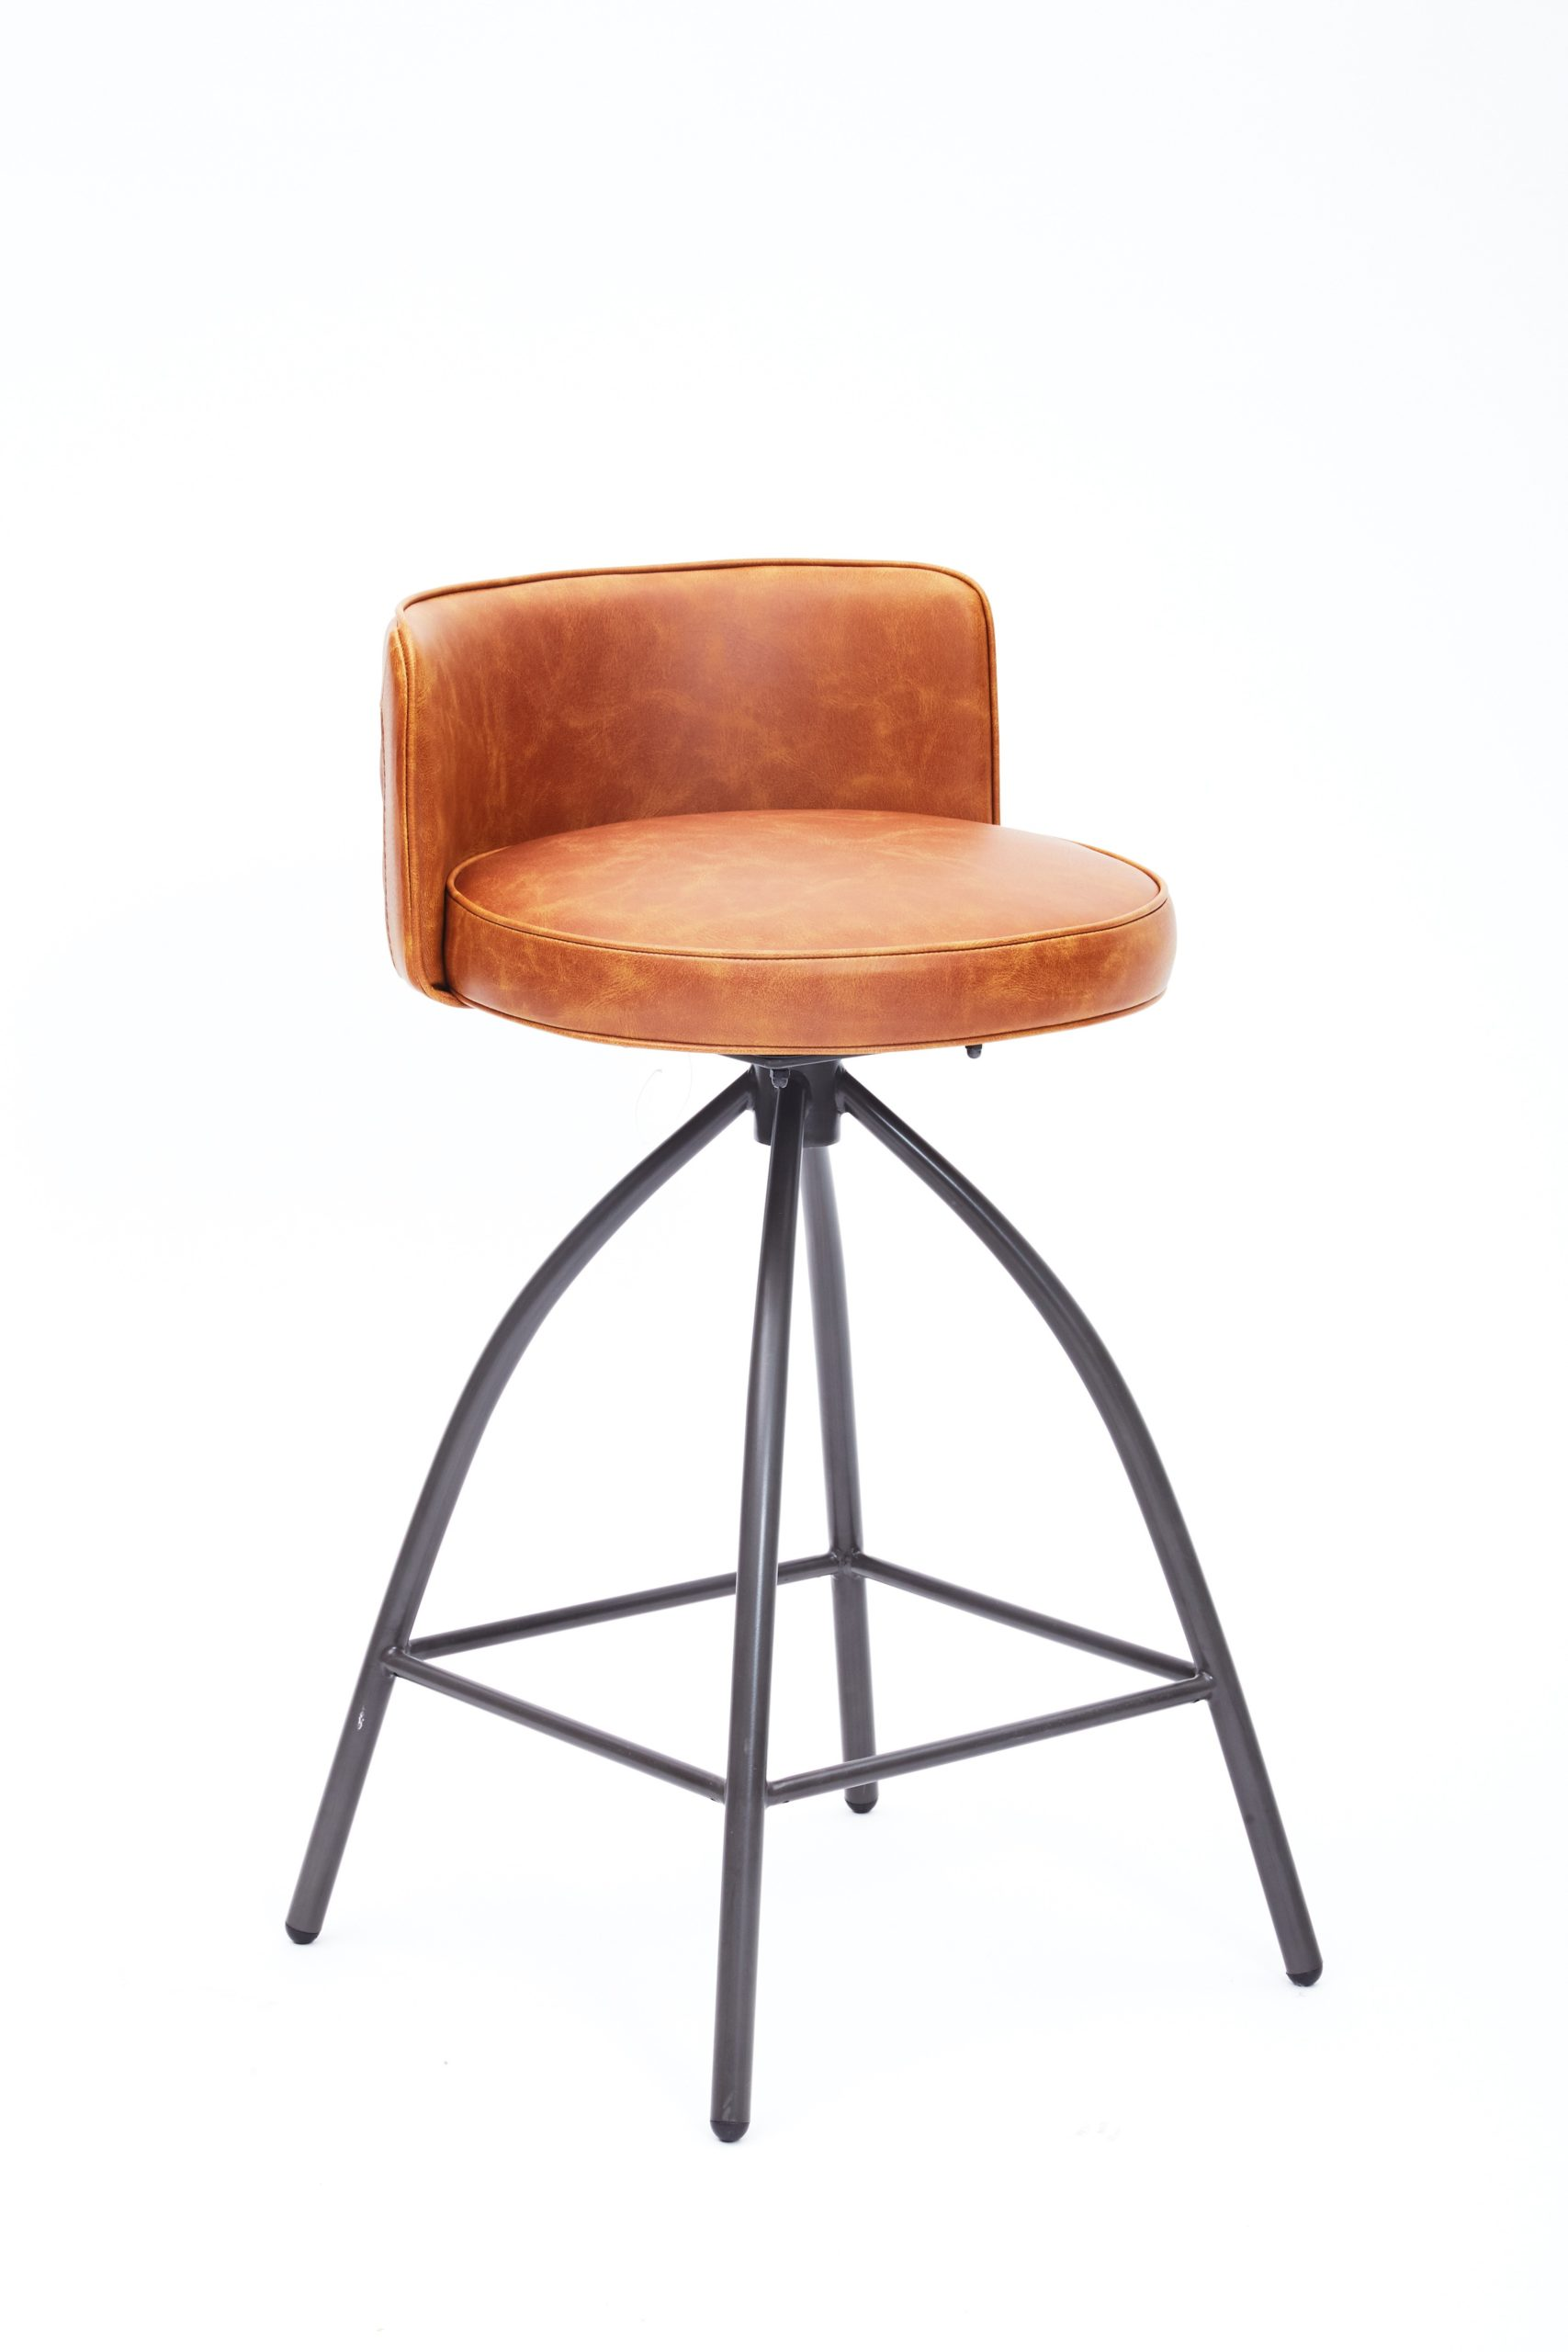 MELBOURNE BAR STOOL - ANGLE DETAIL